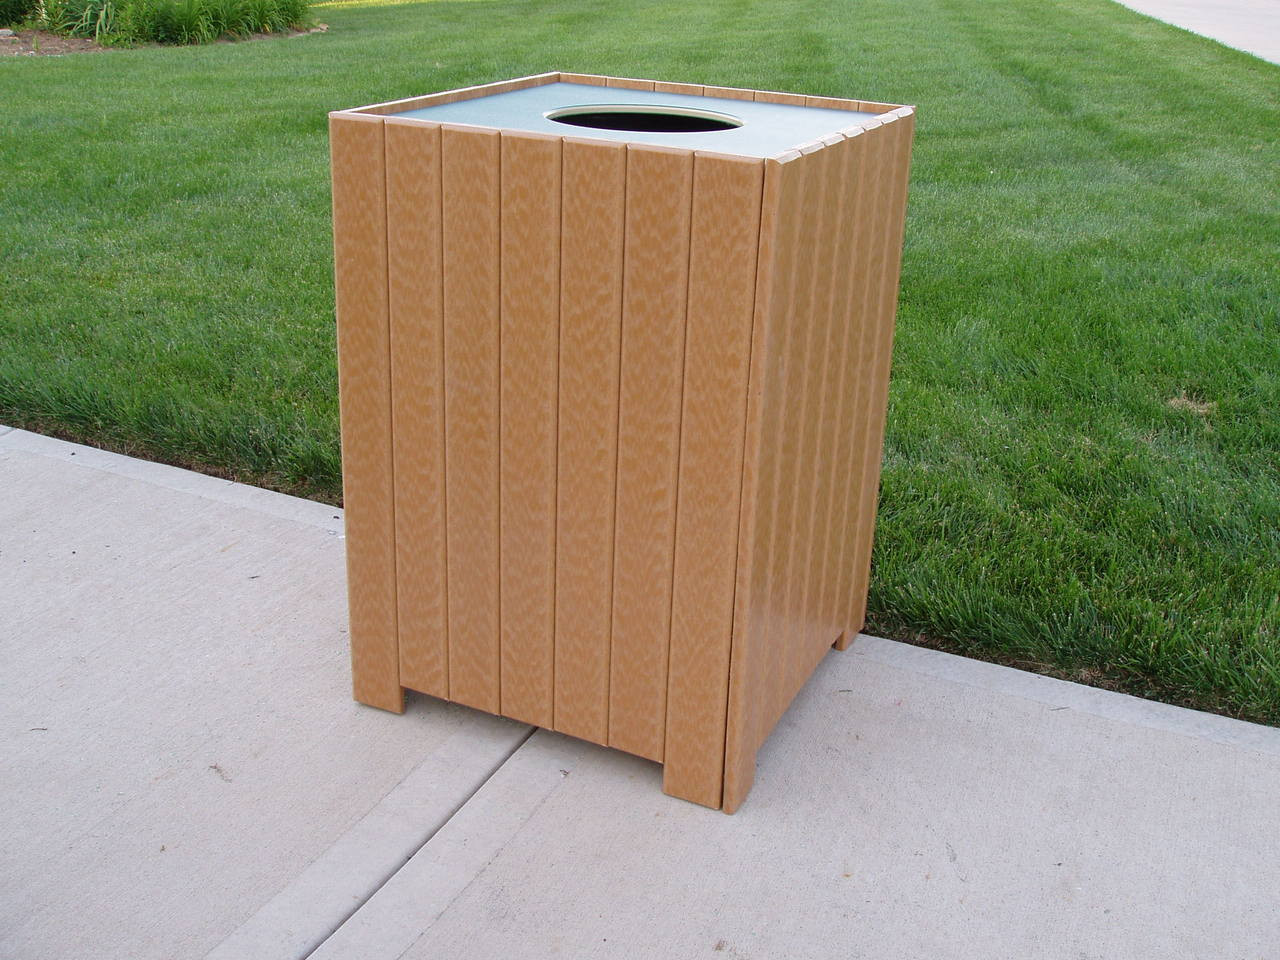 Standard Square Receptacle - 20 gallons